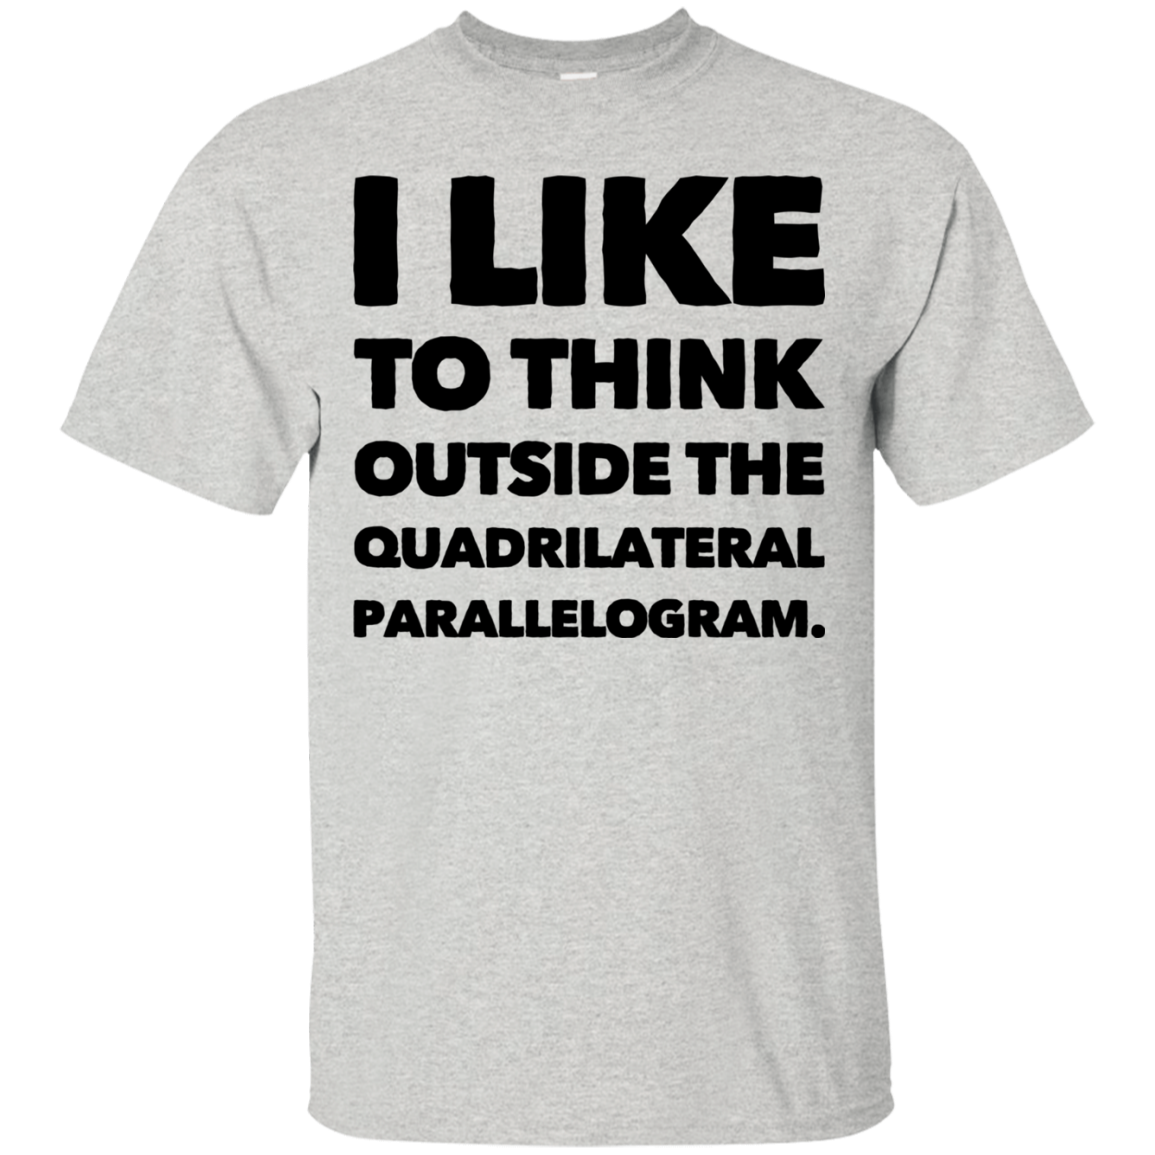 I Like to think outside the Quadrilateral Parallelogram Tshirt